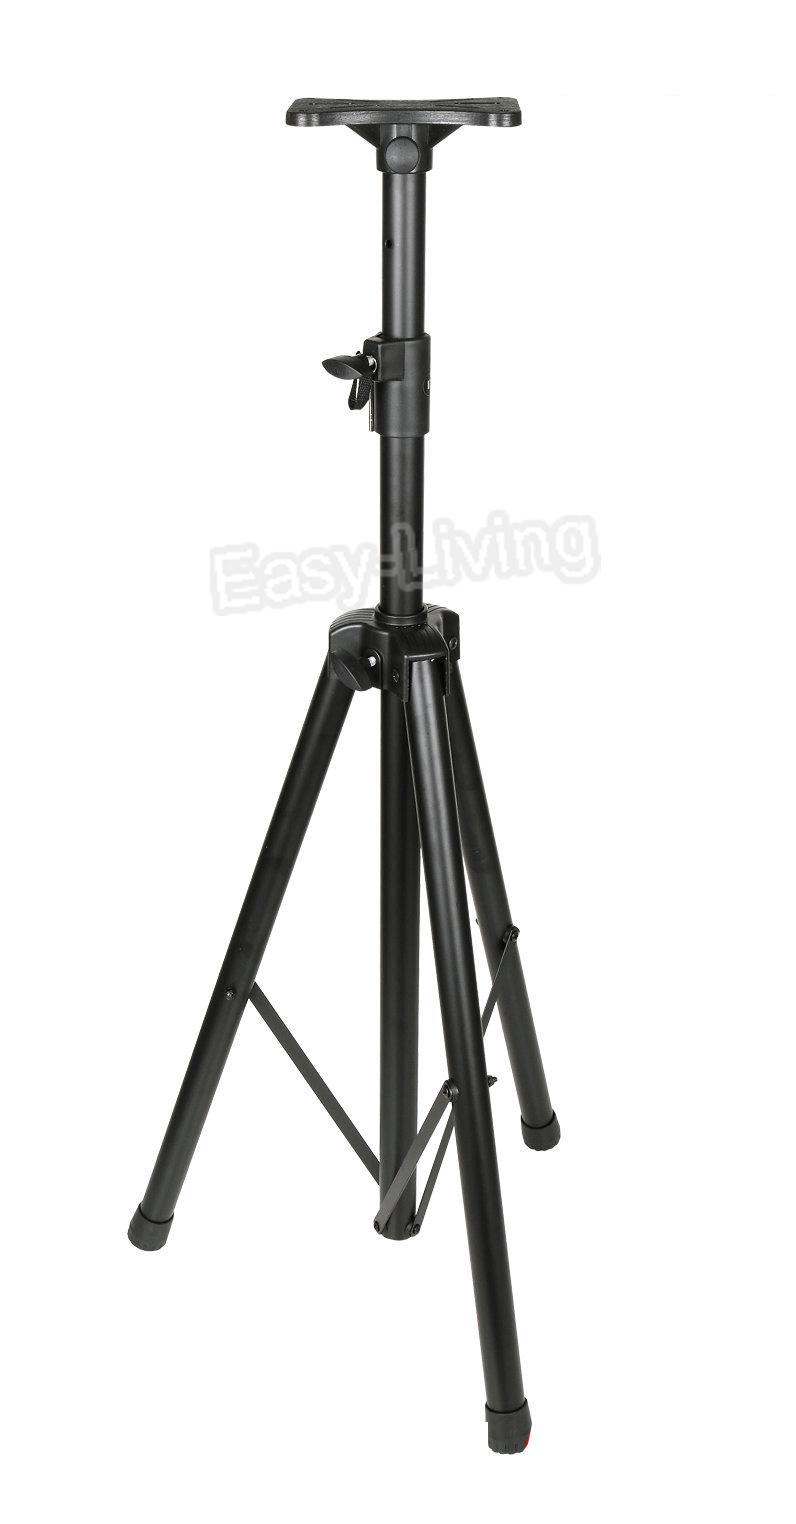 BL-TY180 Universal Folding Projector Stand Tripod Speaker Holder Stand Tripod Surround Holder Support Loading 45kgs